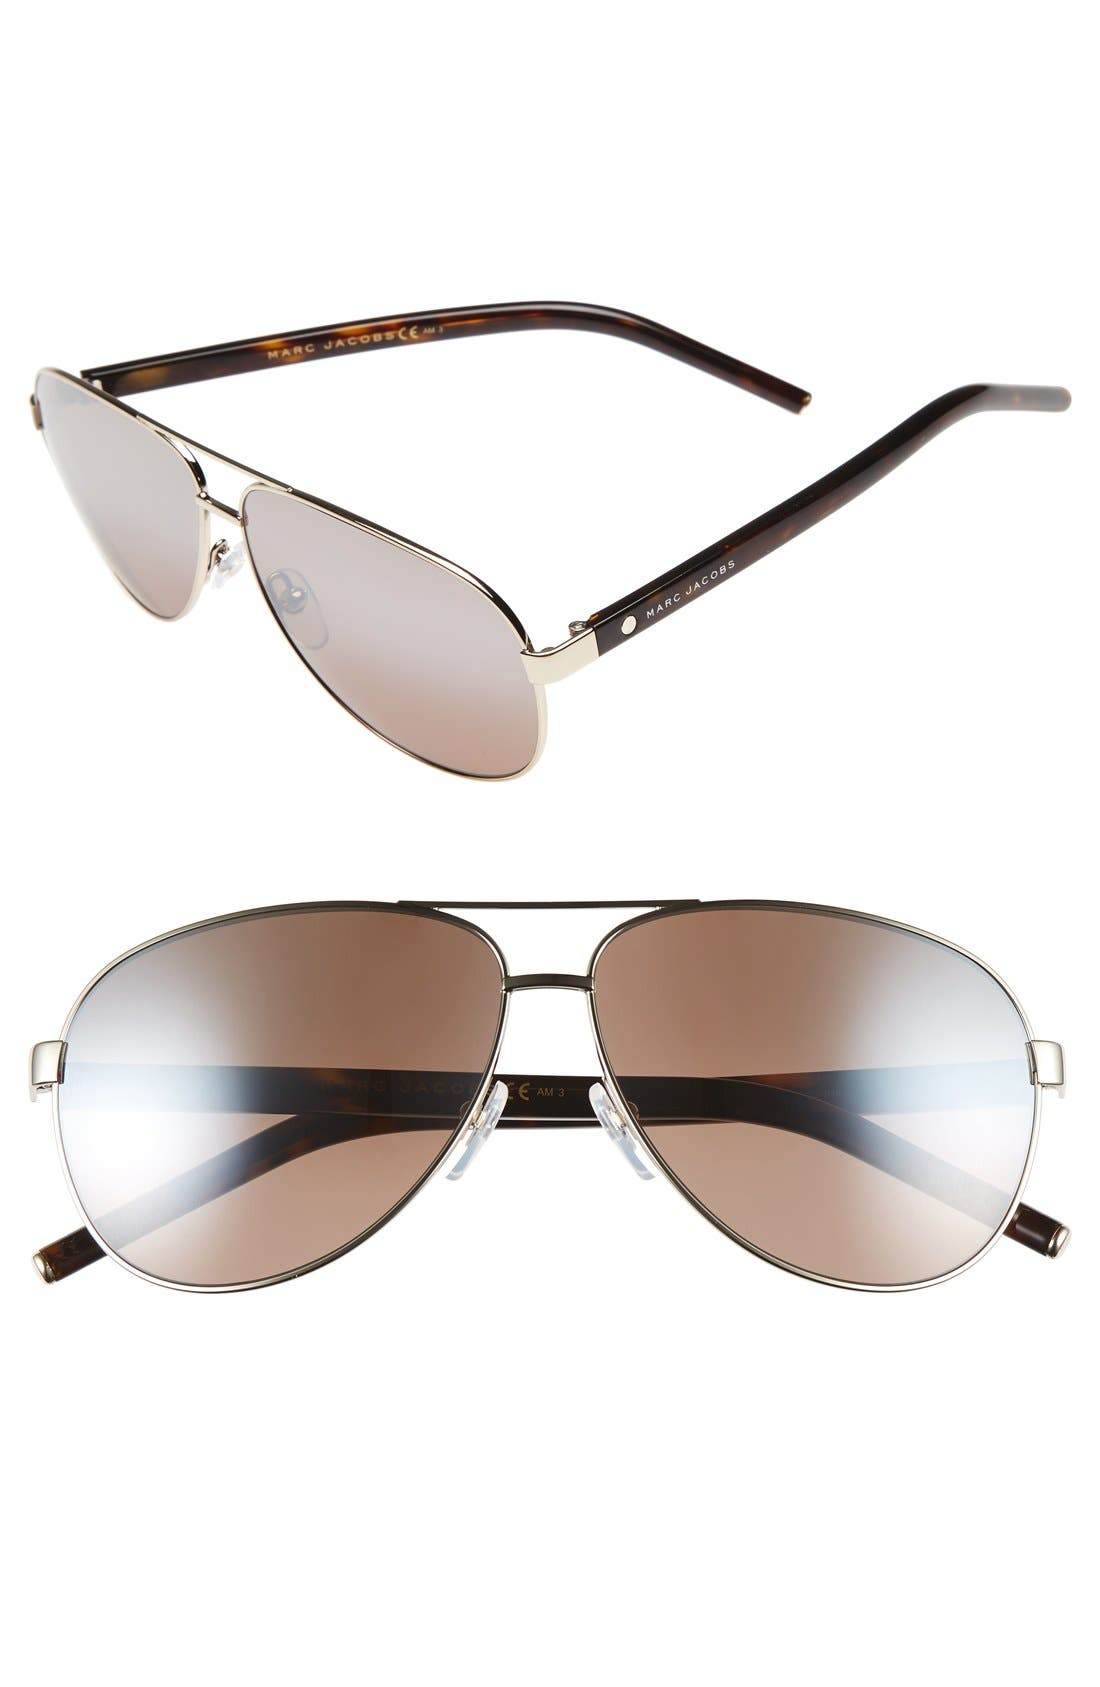 MARC JACOBS 60mm Sunglasses